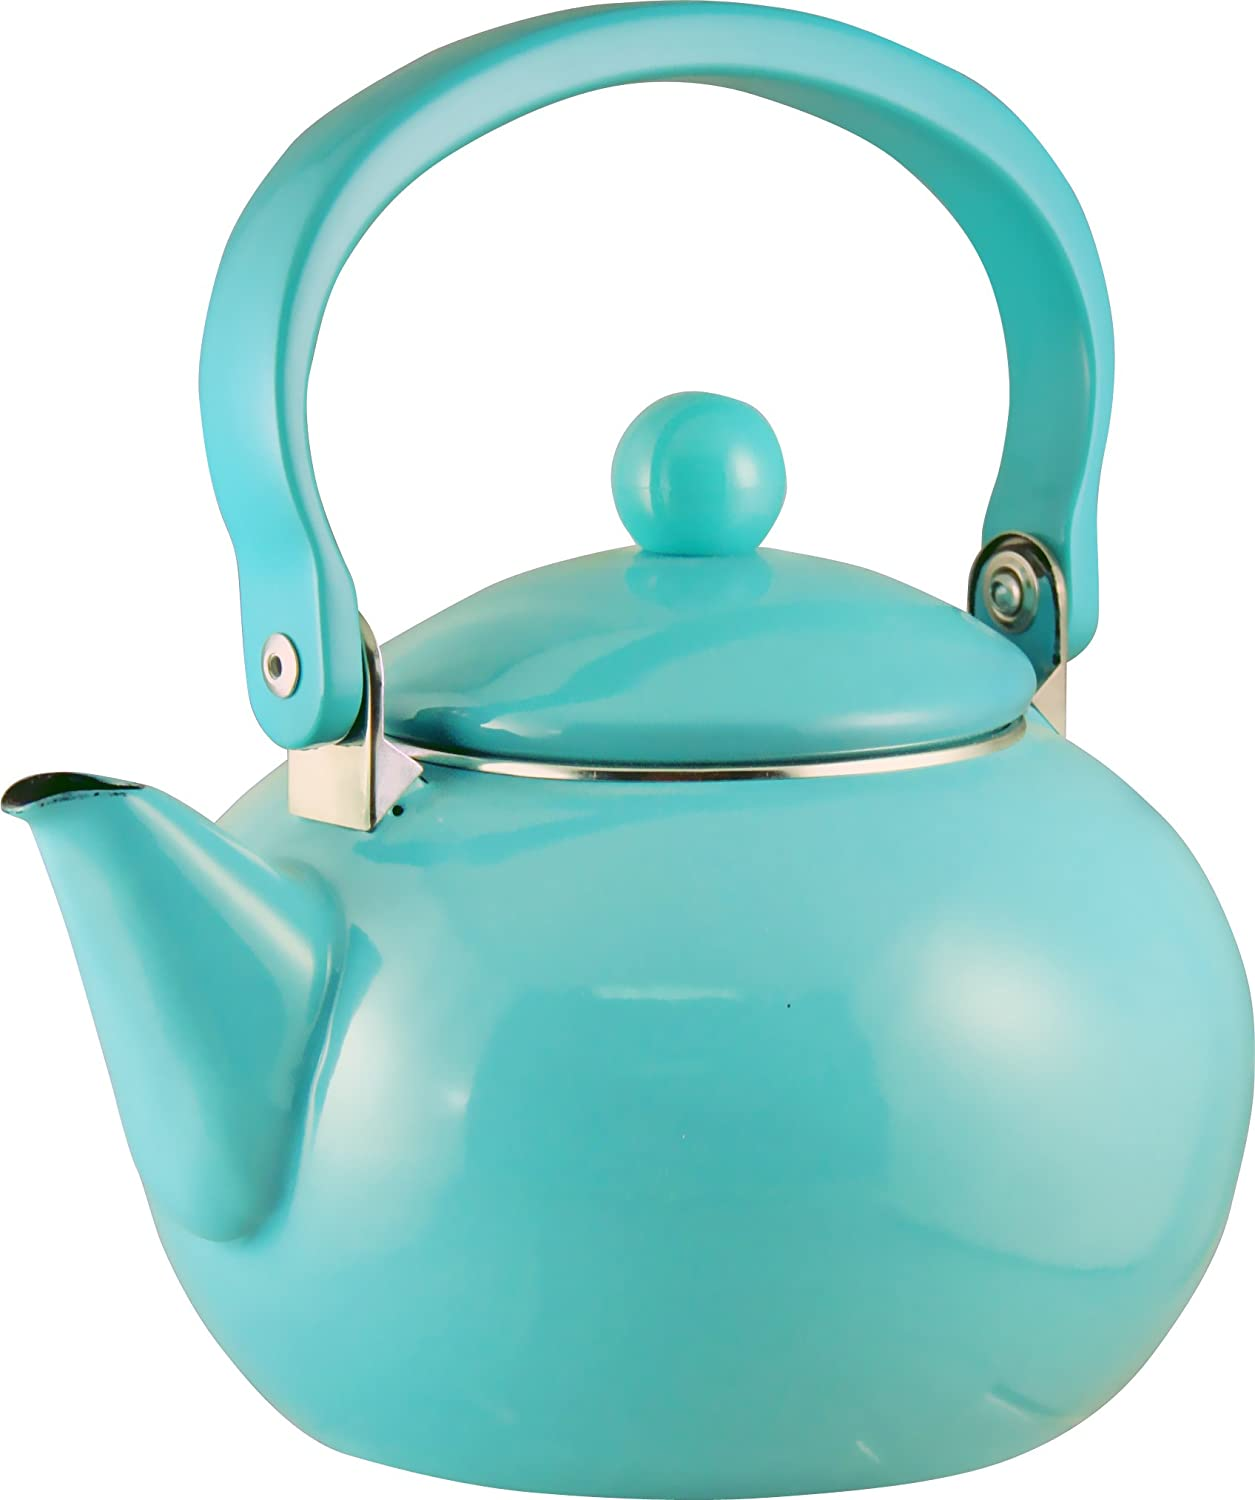 Top 5 Of The Best Tea Kettle For Gas Stove – Reviews & Buyer's Guide 4